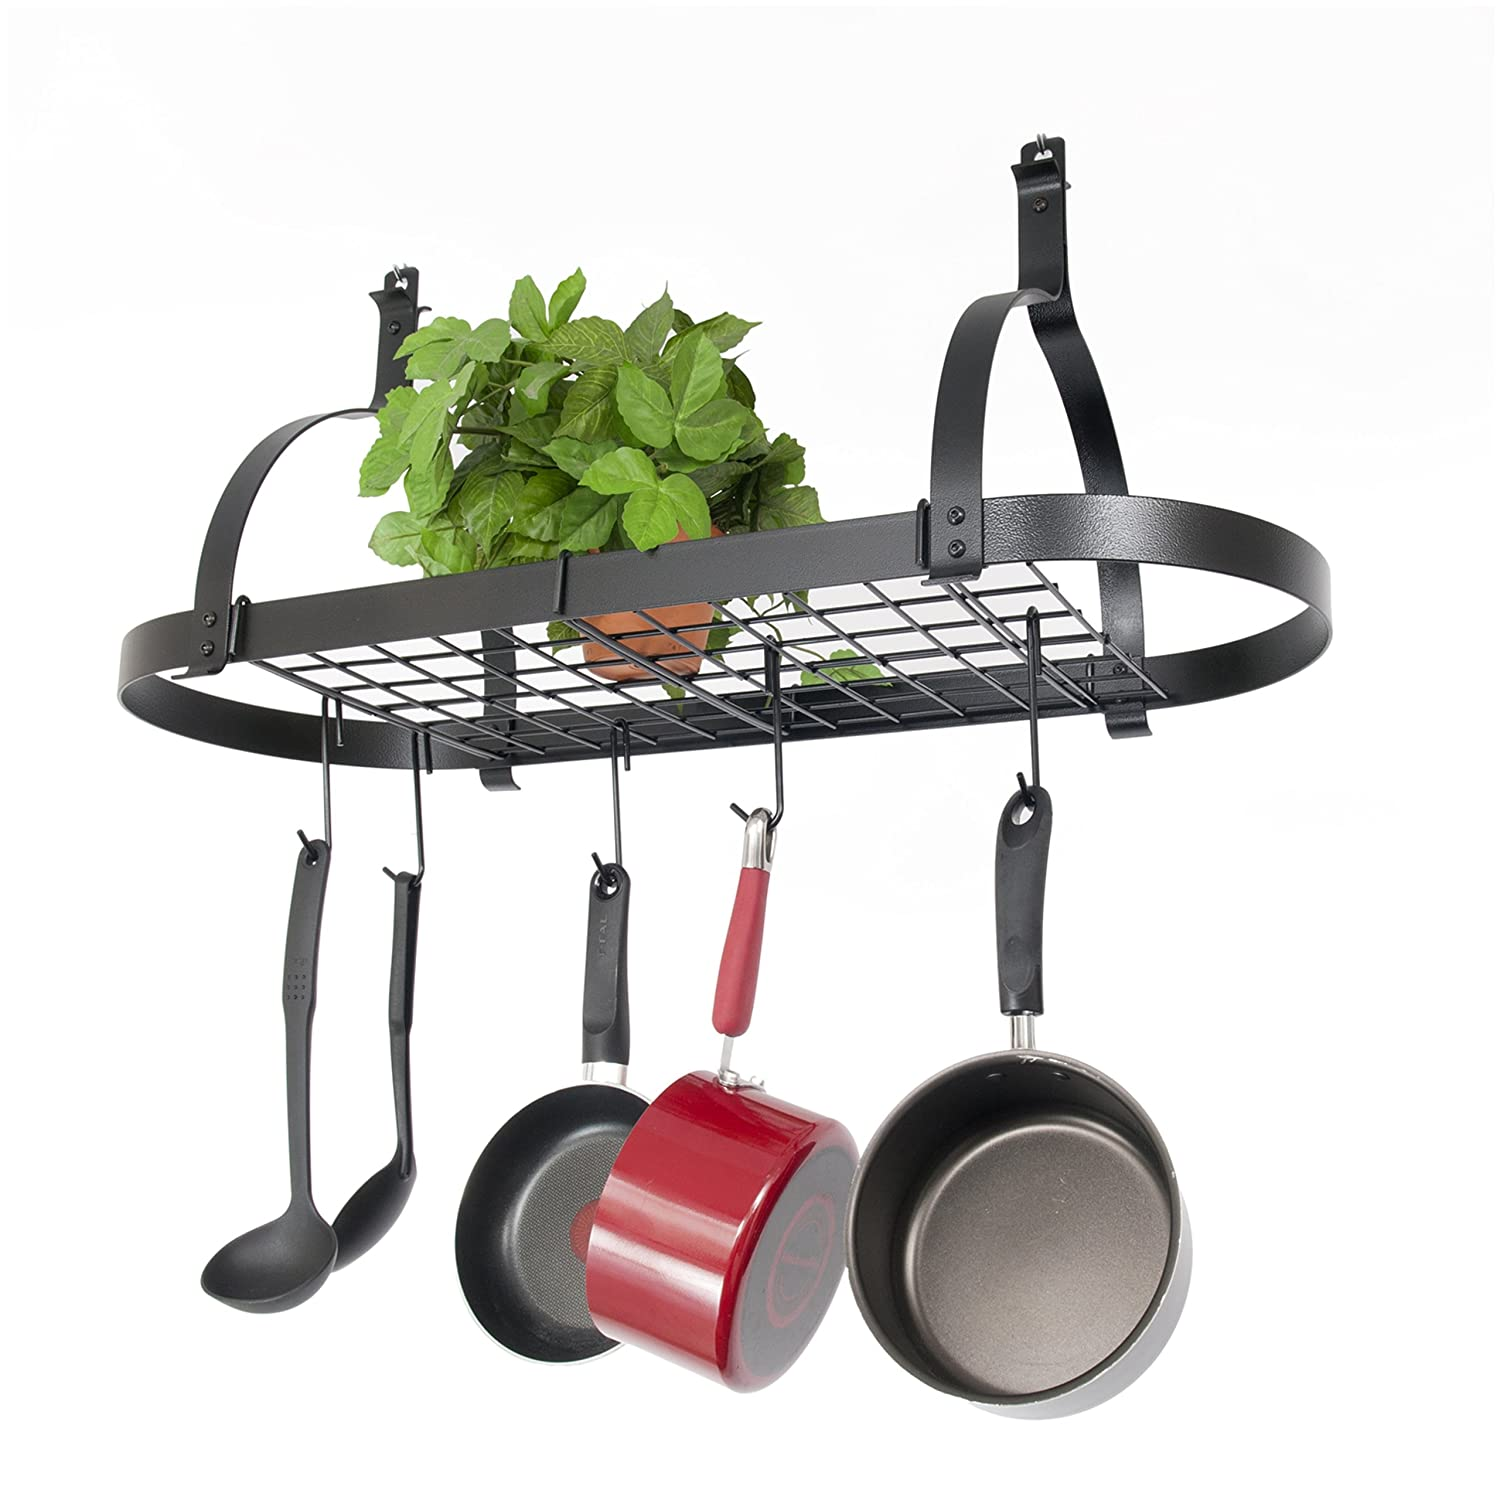 Decorative wall mounted pot rack for kitchen for Pot racks for kitchen